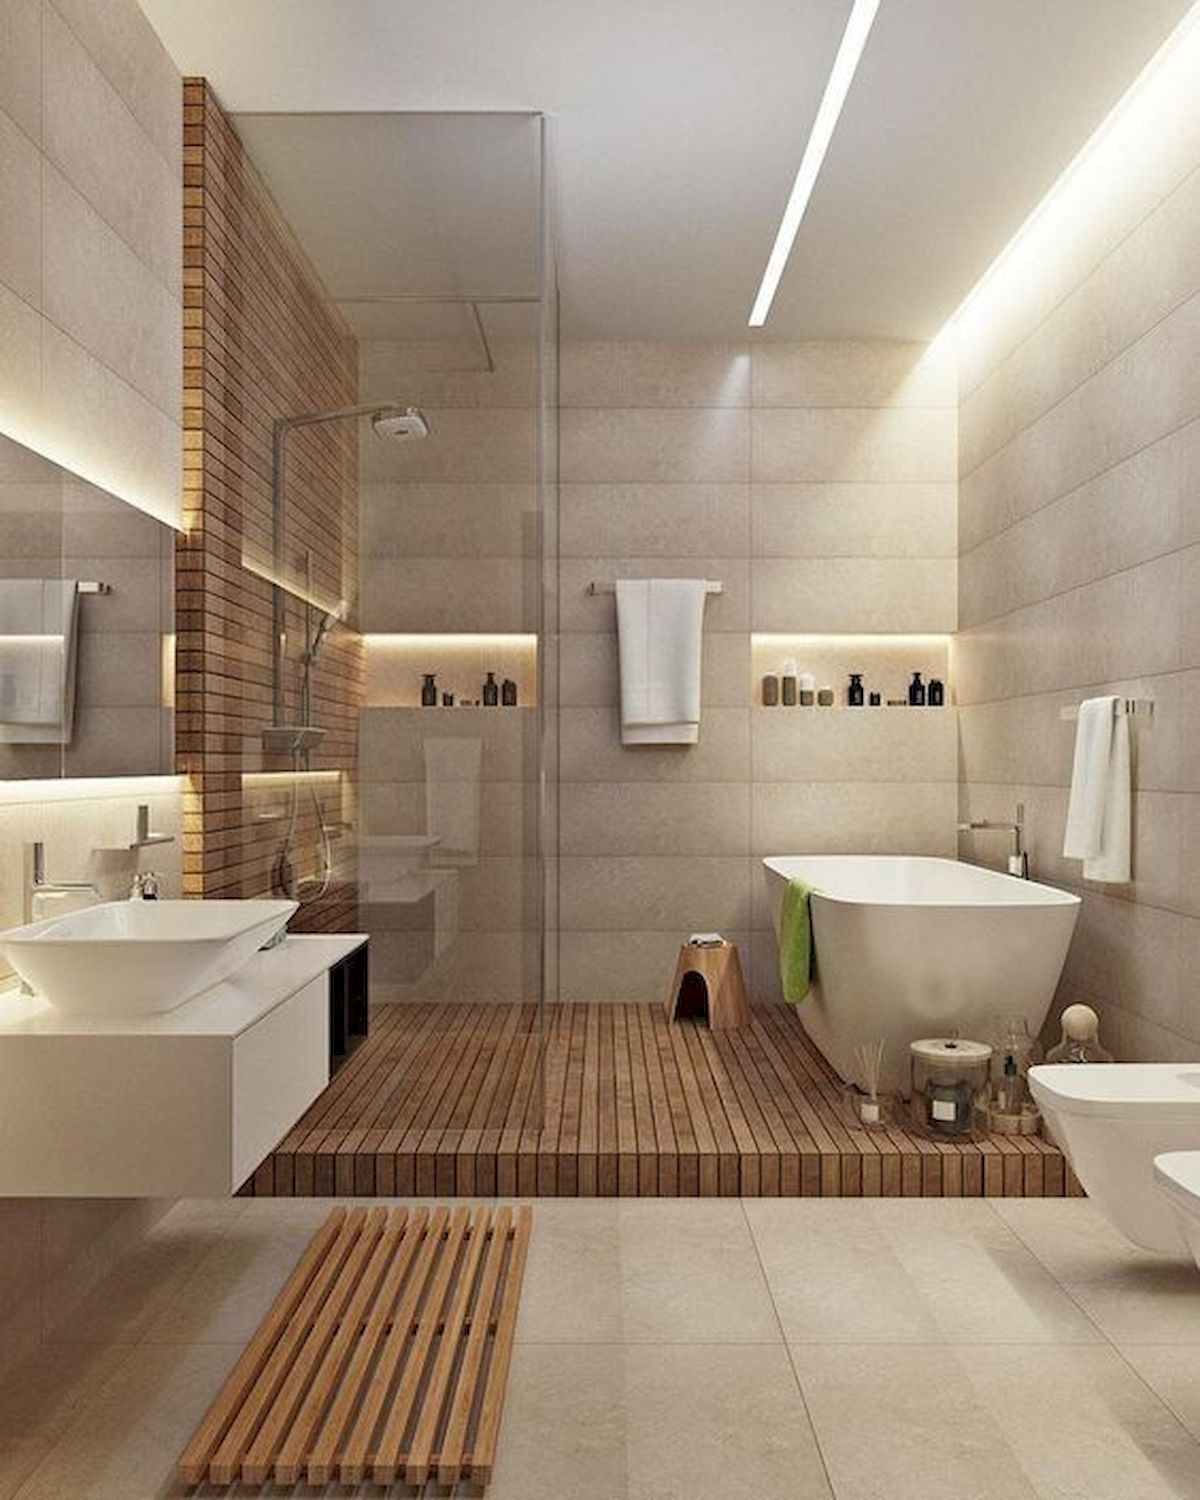 46 Fantastic Walk In Shower No Door for Bathroom Ideas 24